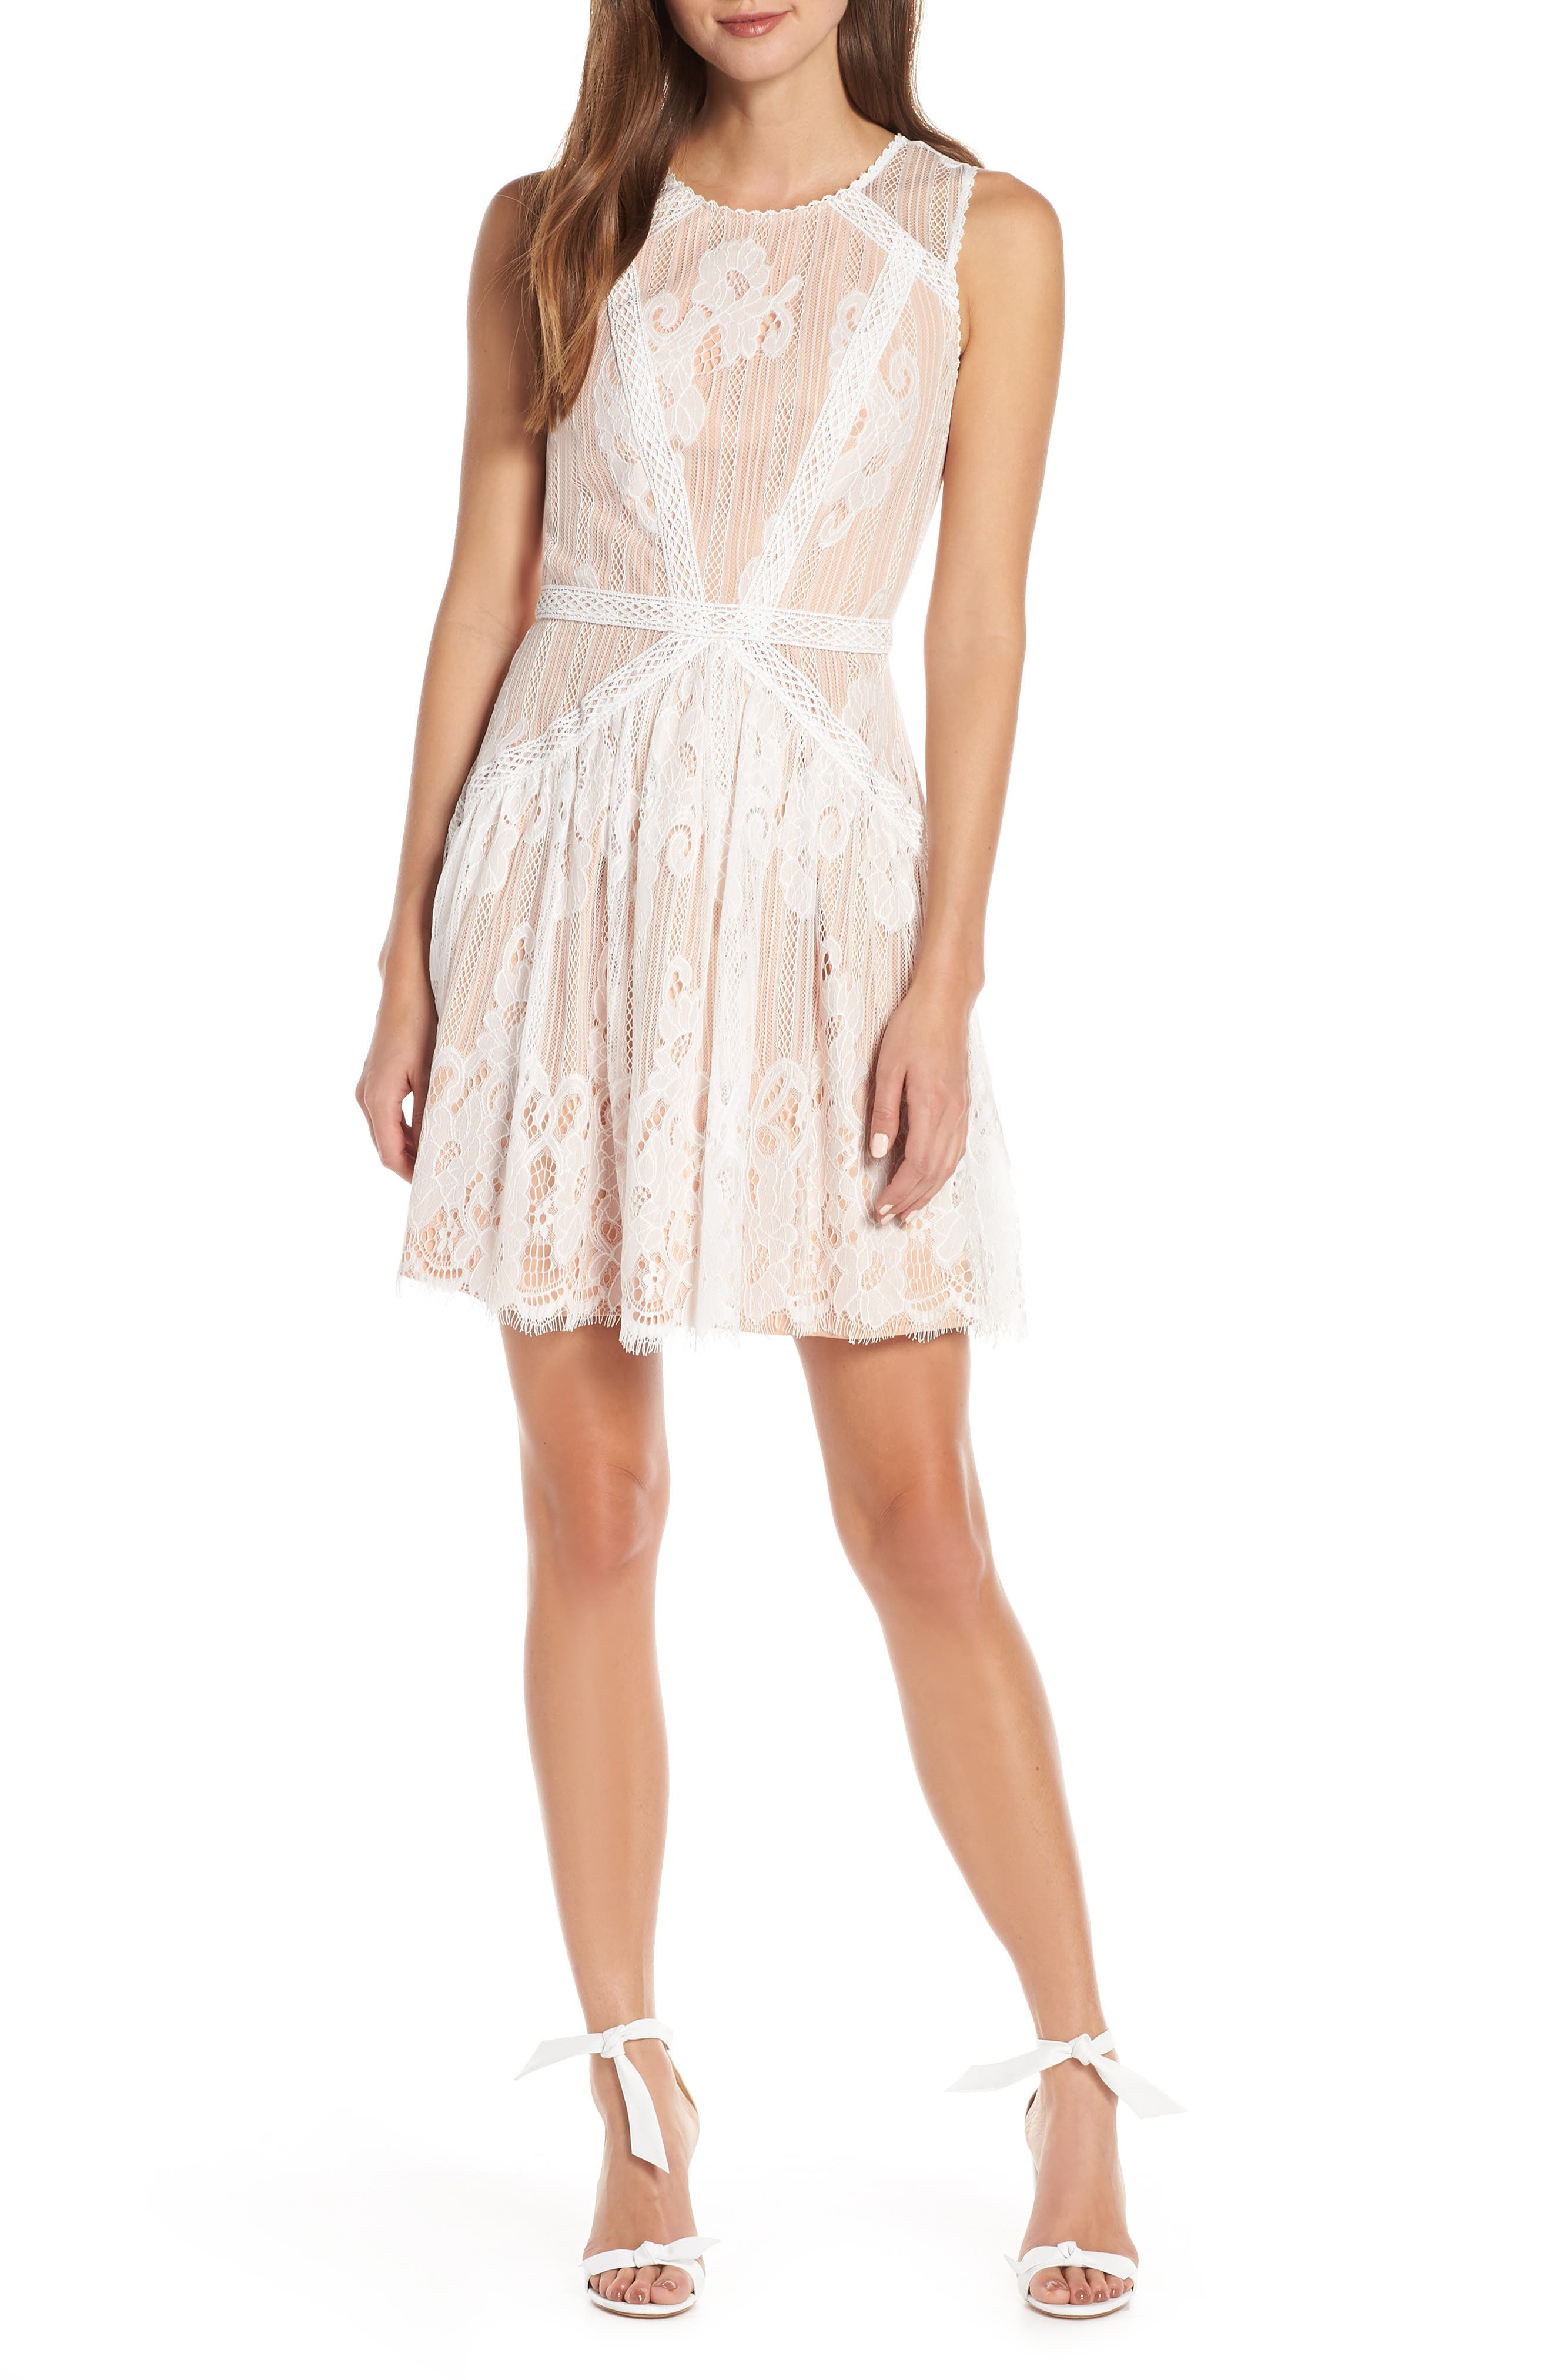 Adelyn Rae Trina Lace Fit & Flare Dress, White